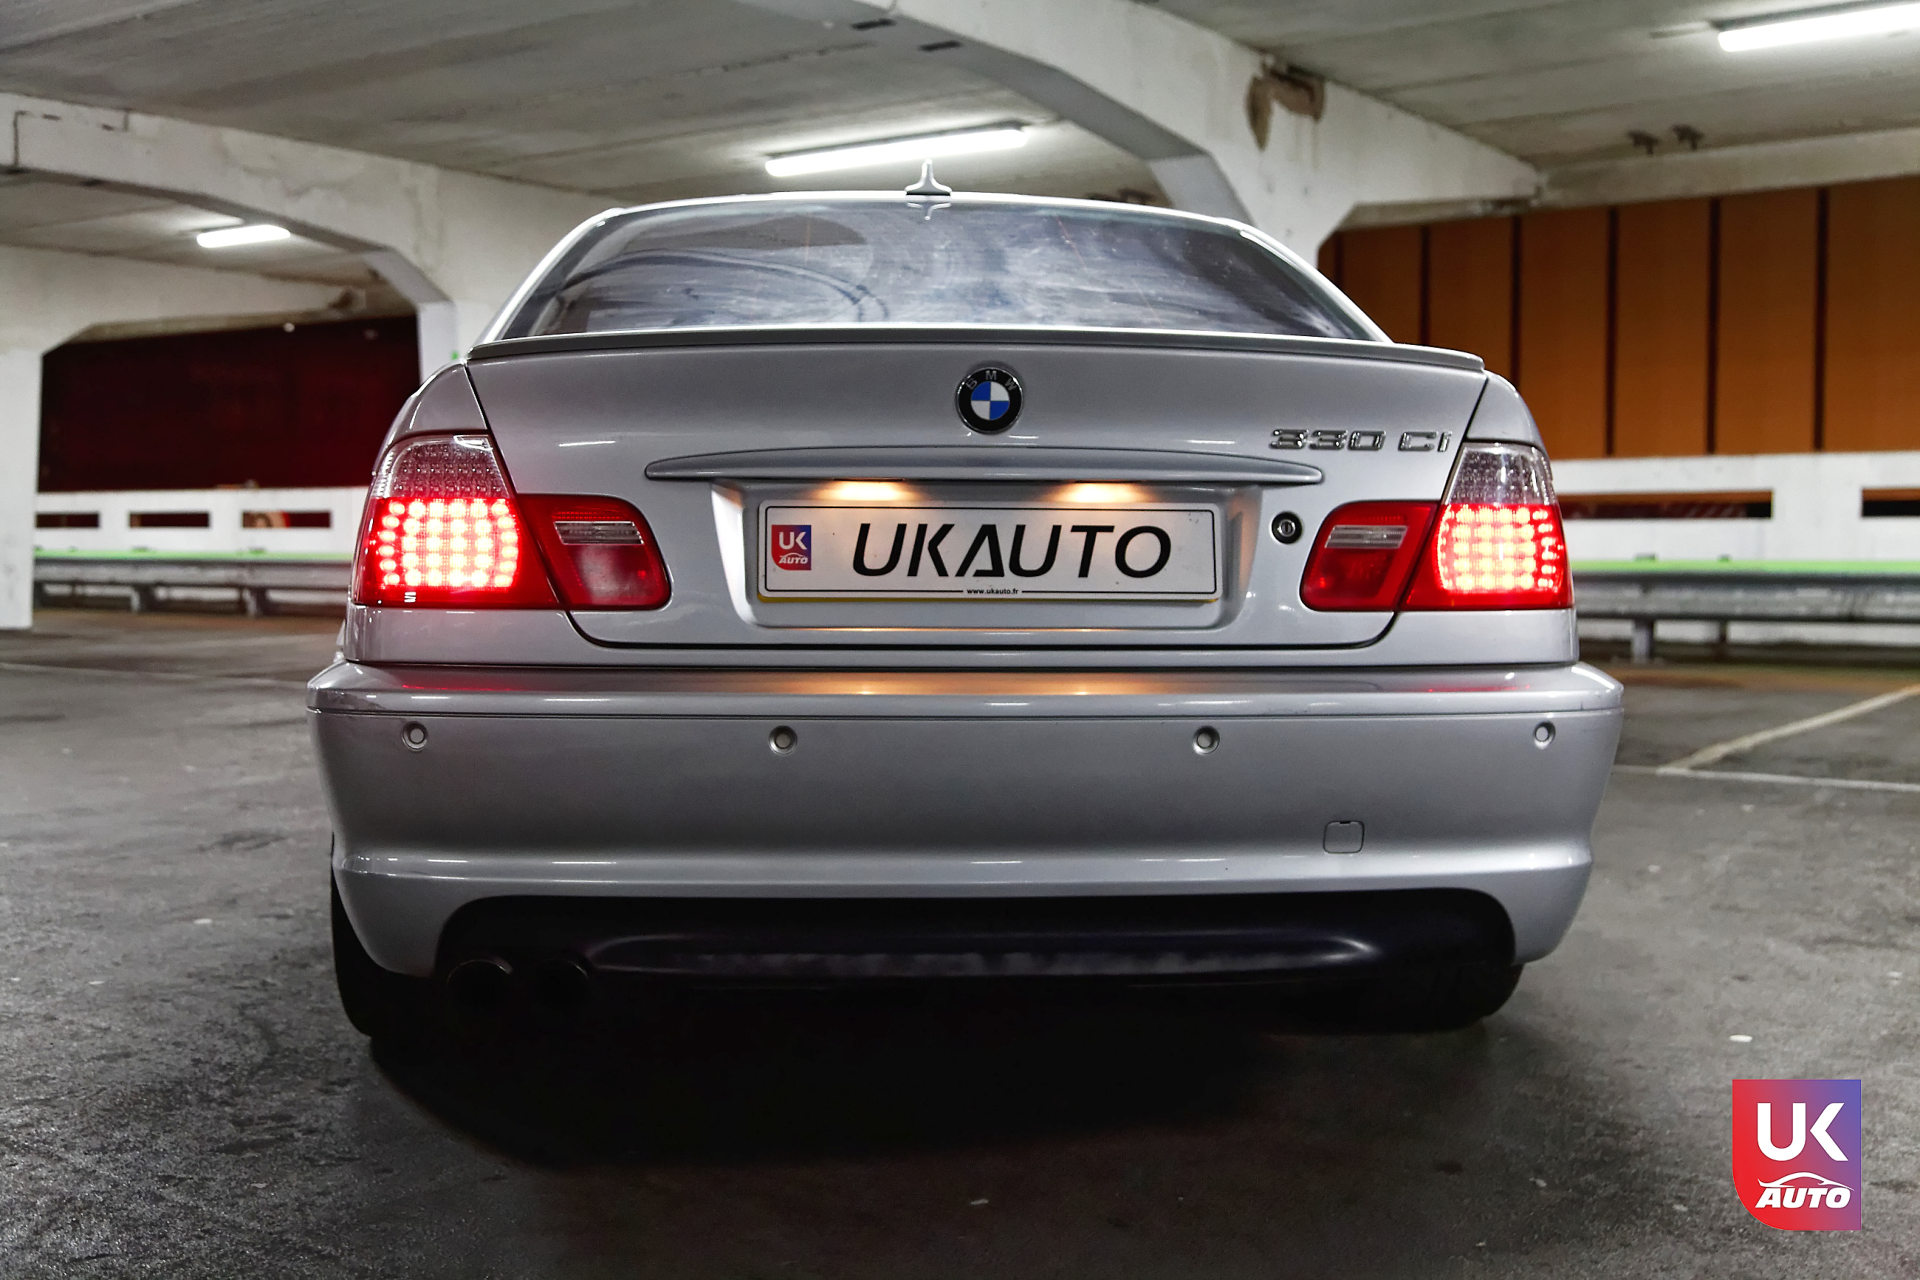 Bmw 330ci e46 import voiture anglaise bmw angleterre ukauto mandataire angleterre bmw 330ci rhd6 DxO - MANDATAIRE BMW IMPORT BMW 330CI PAR UKAUTO IMPORT BMW ANGLETERRE PAS CHER FELICITATION A THIBAUT